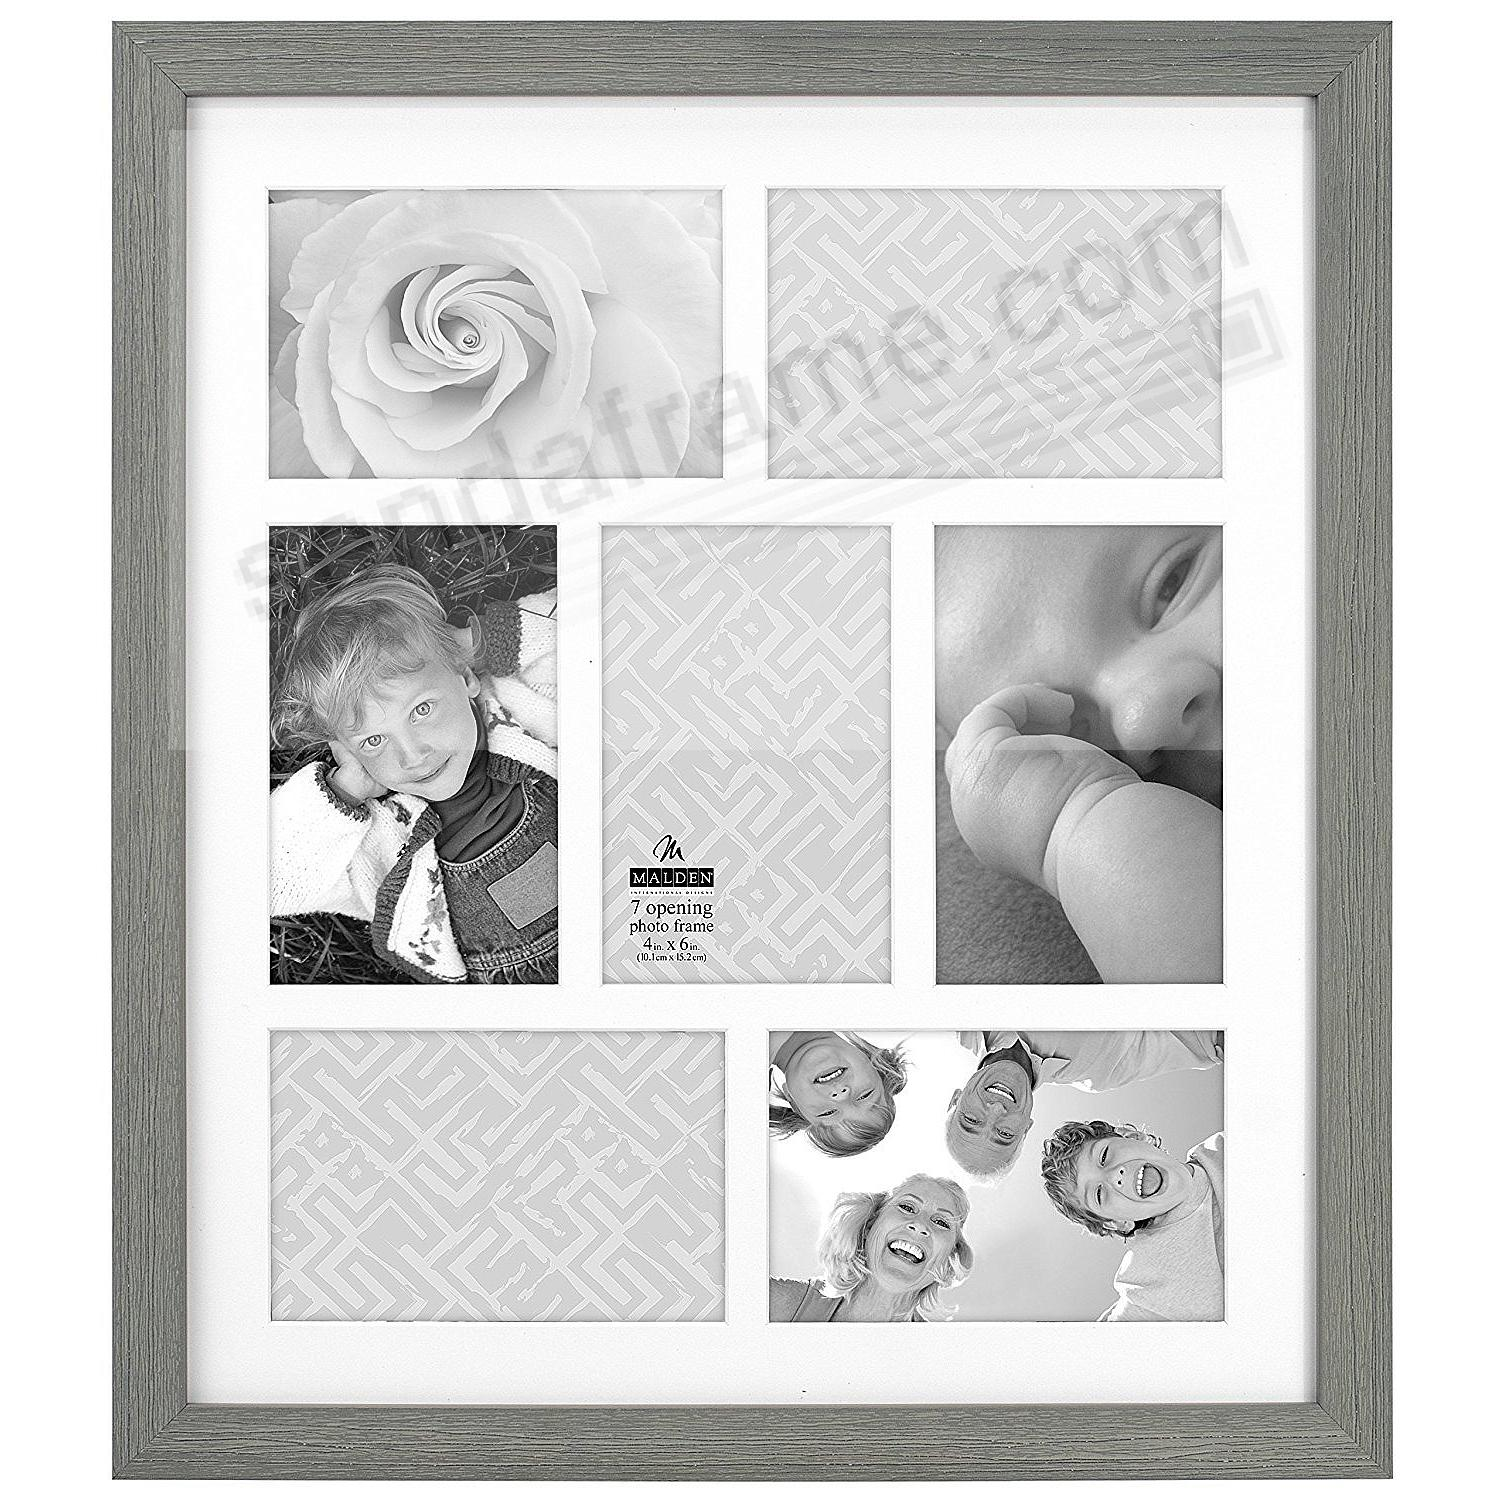 DISTRESSED GRAY Matted Collage<br>displays (7) 4x6 photos by Malden Design&reg;.